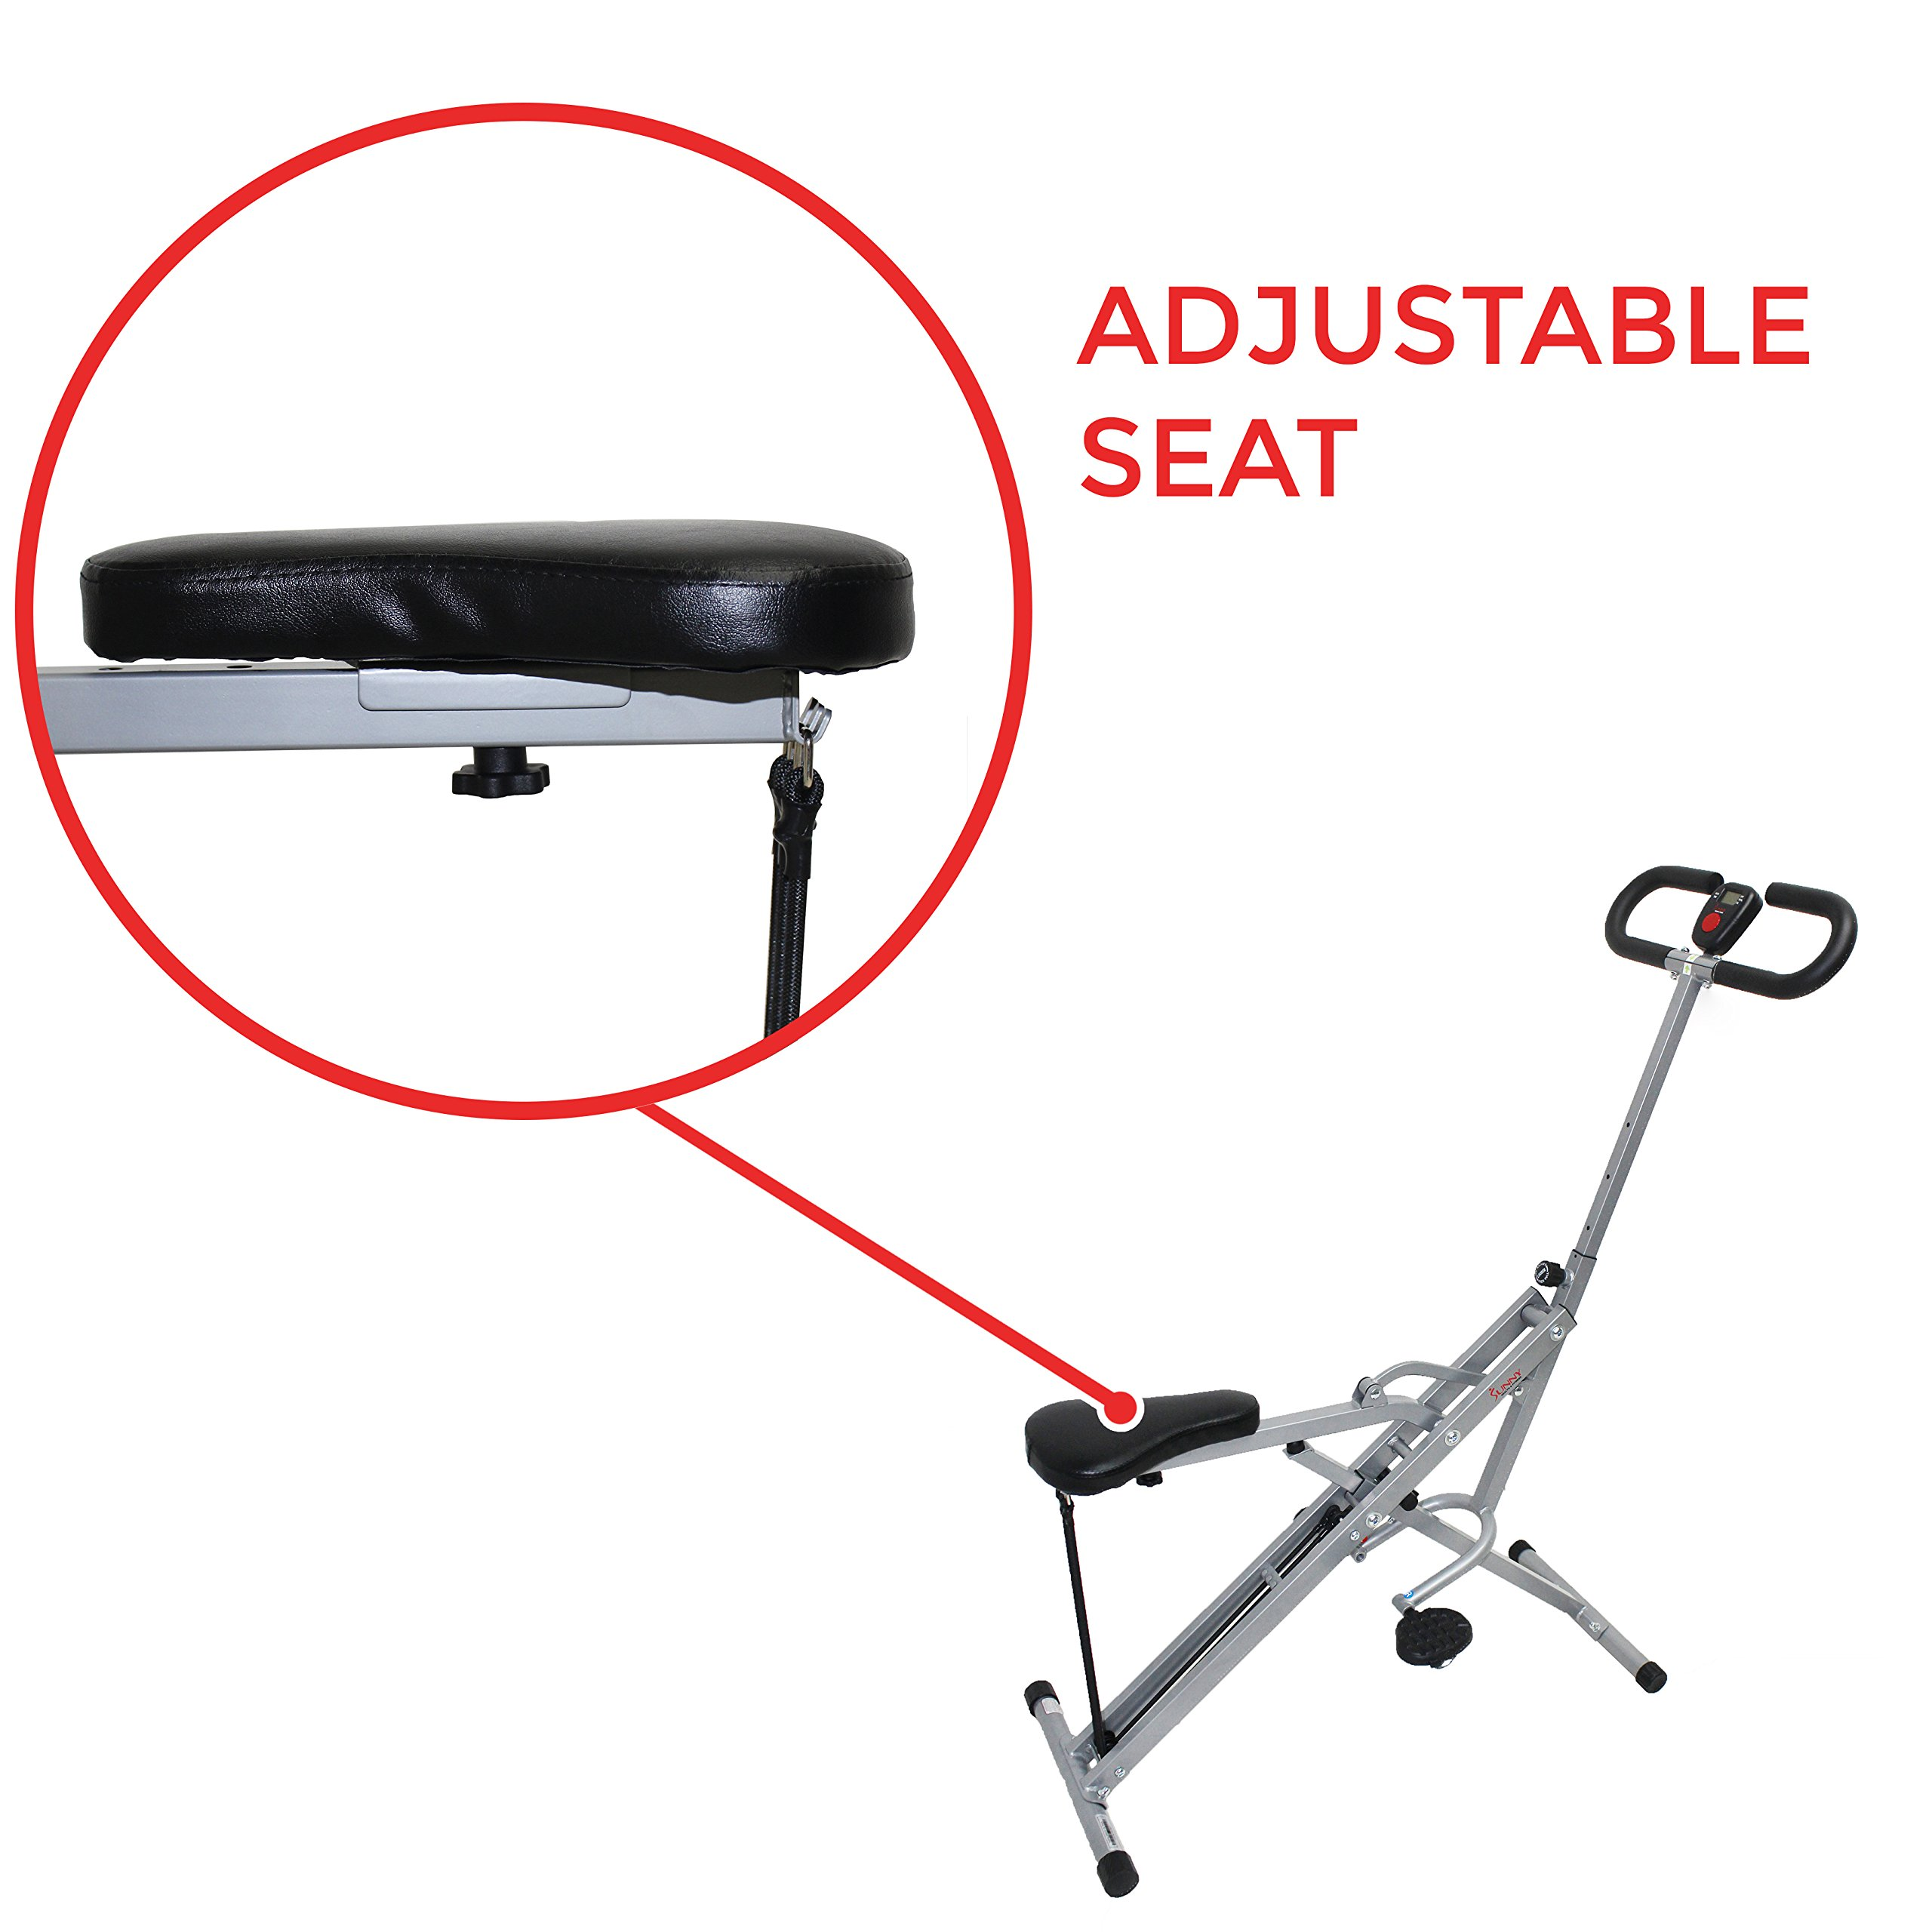 Sunny Health & Fitness Squat Assist Row-N-Ride Trainer for Squat Exercise and Glutes Workout by Sunny Health & Fitness (Image #7)